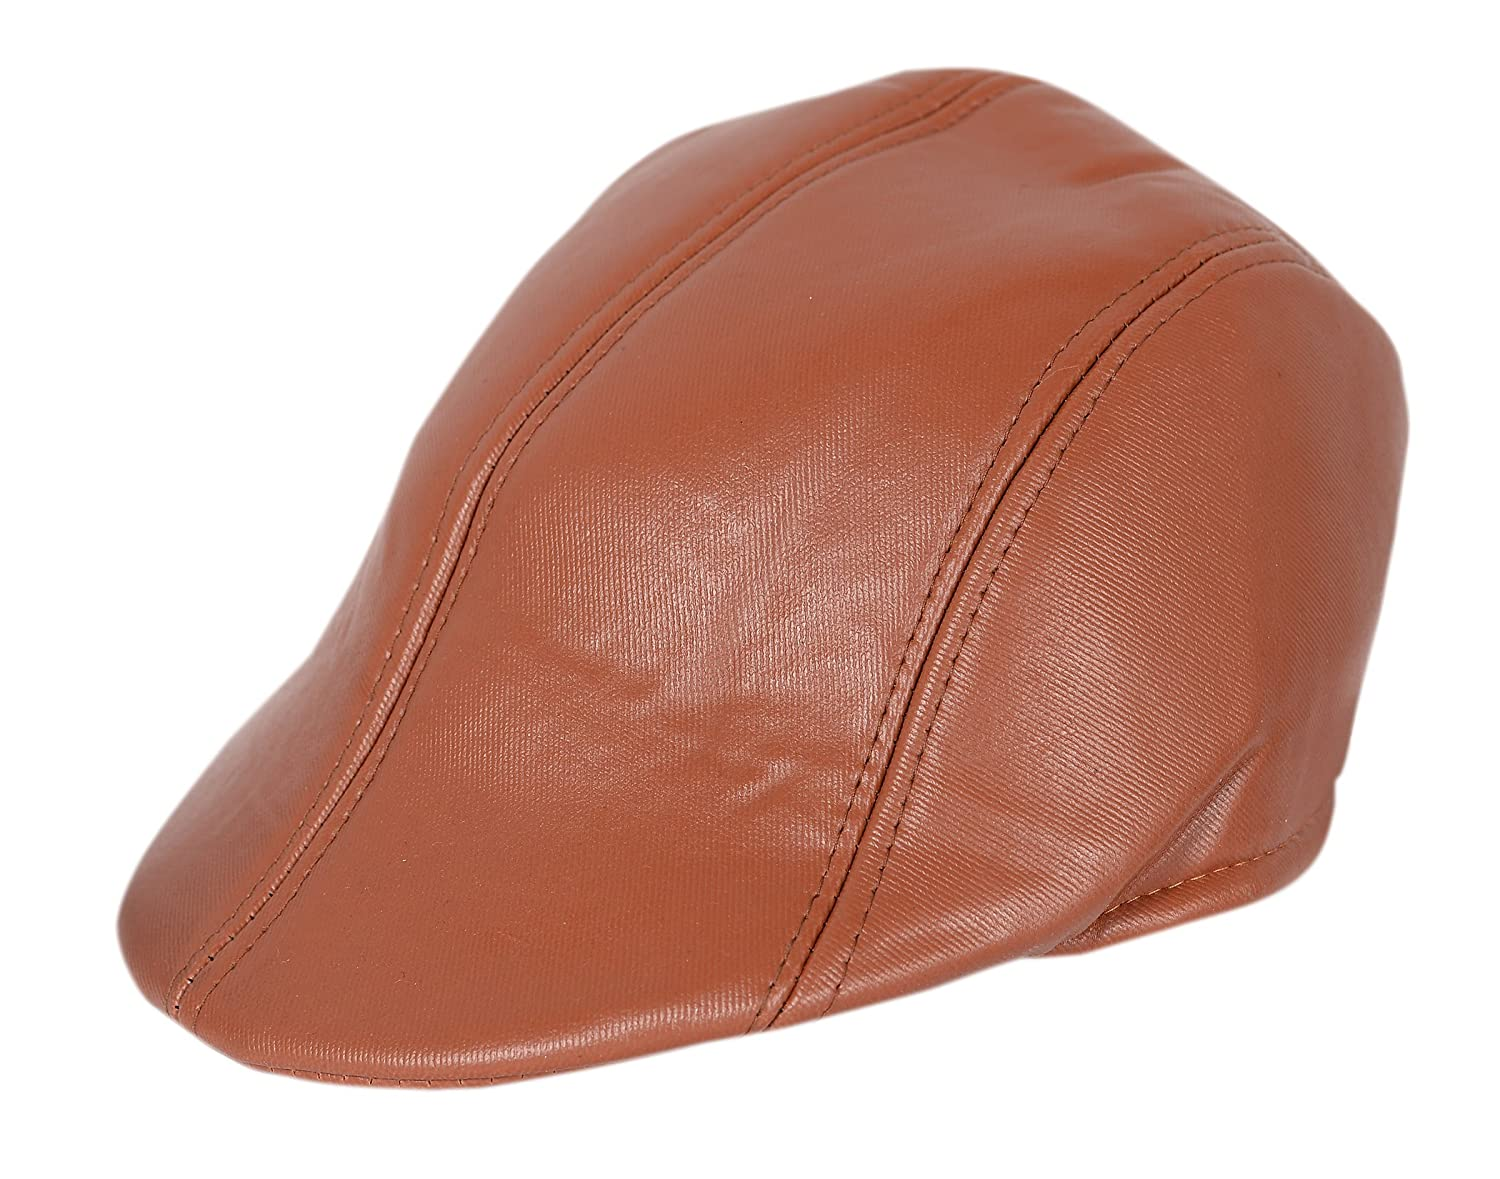 Krystle Men s Tan Leather Golf Cap  Amazon.in  Clothing   Accessories 67fe6824f0d